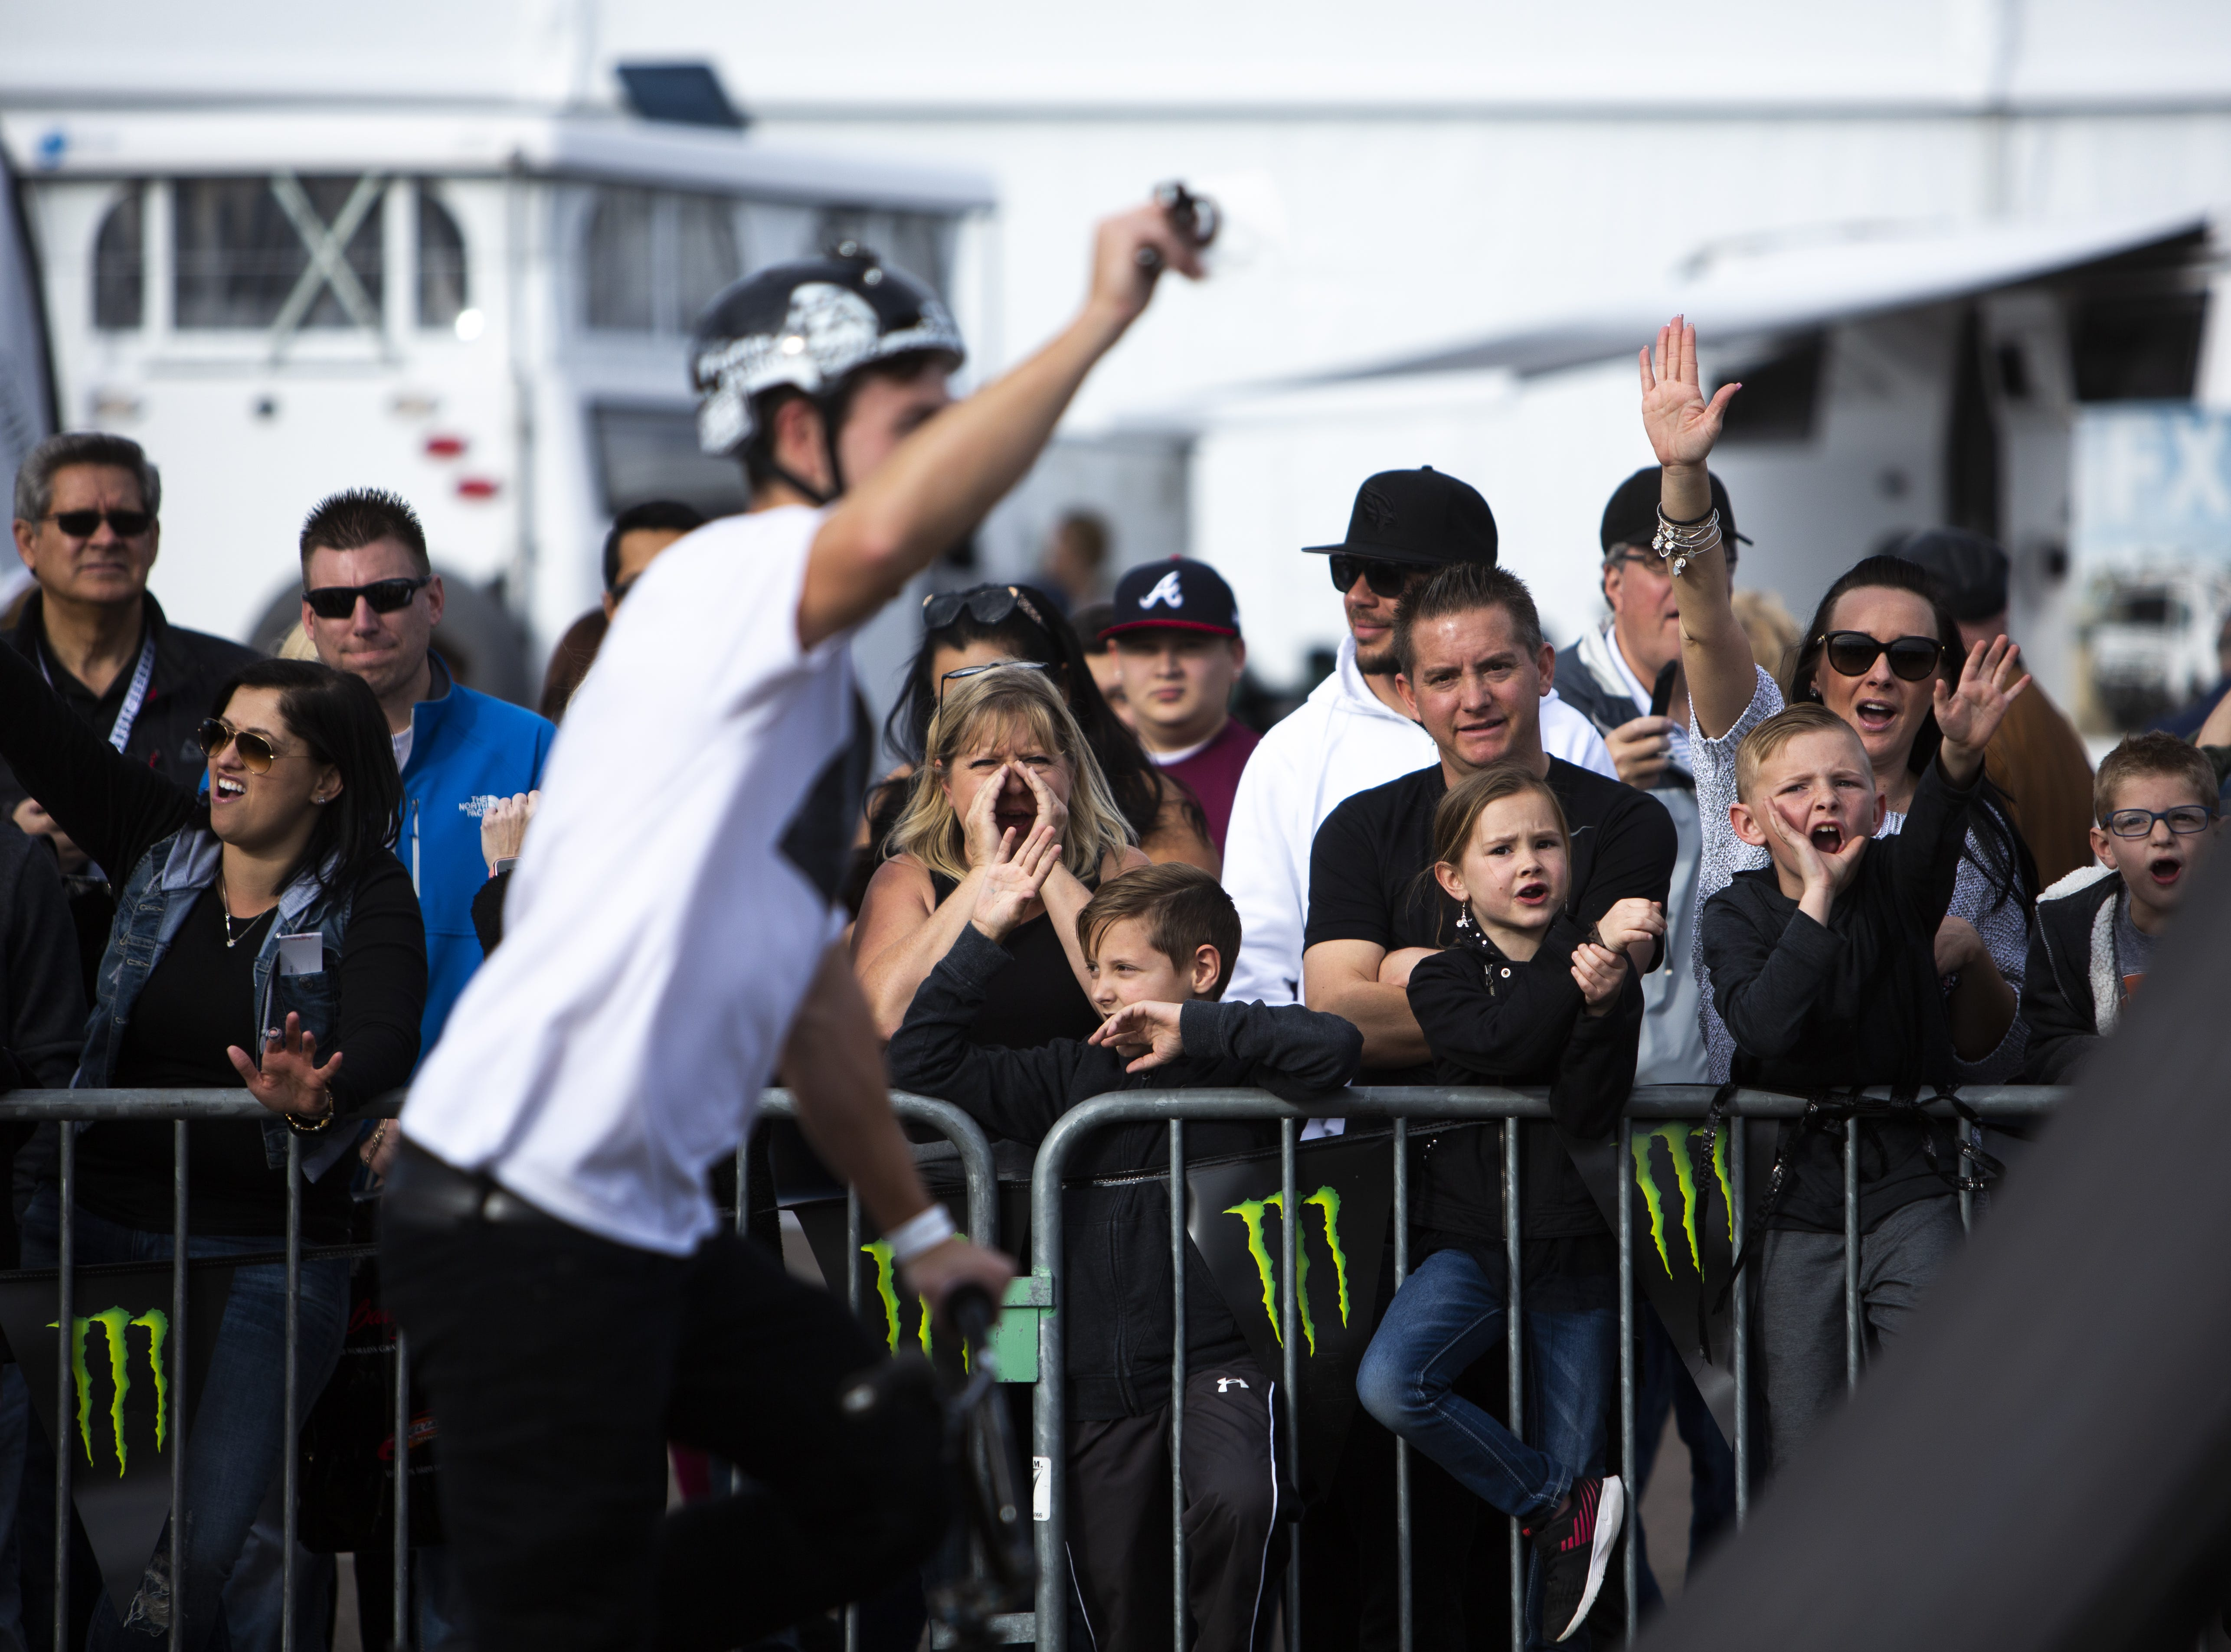 A crowd cheers on members of of the Monster Energy BMX team at the Barrett-Jackson Car Auction on Jan. 12, the first day of the event.